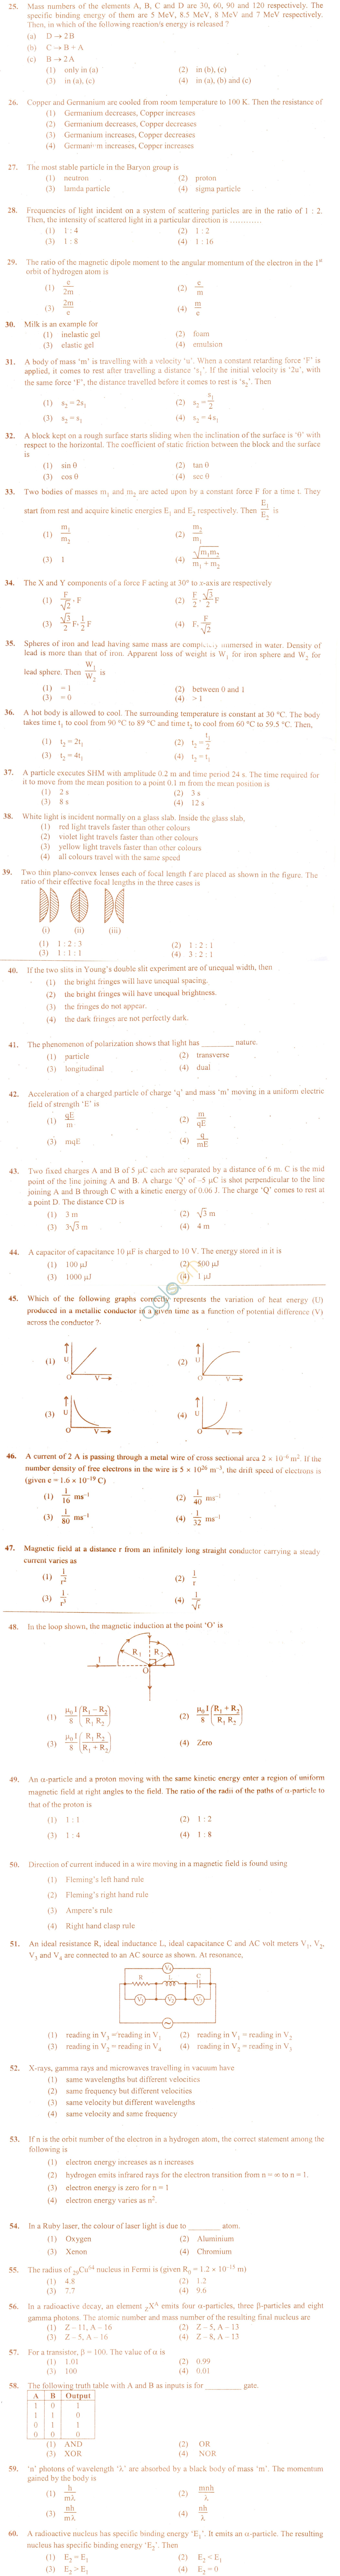 KCET 2012 Question Paper - Physics